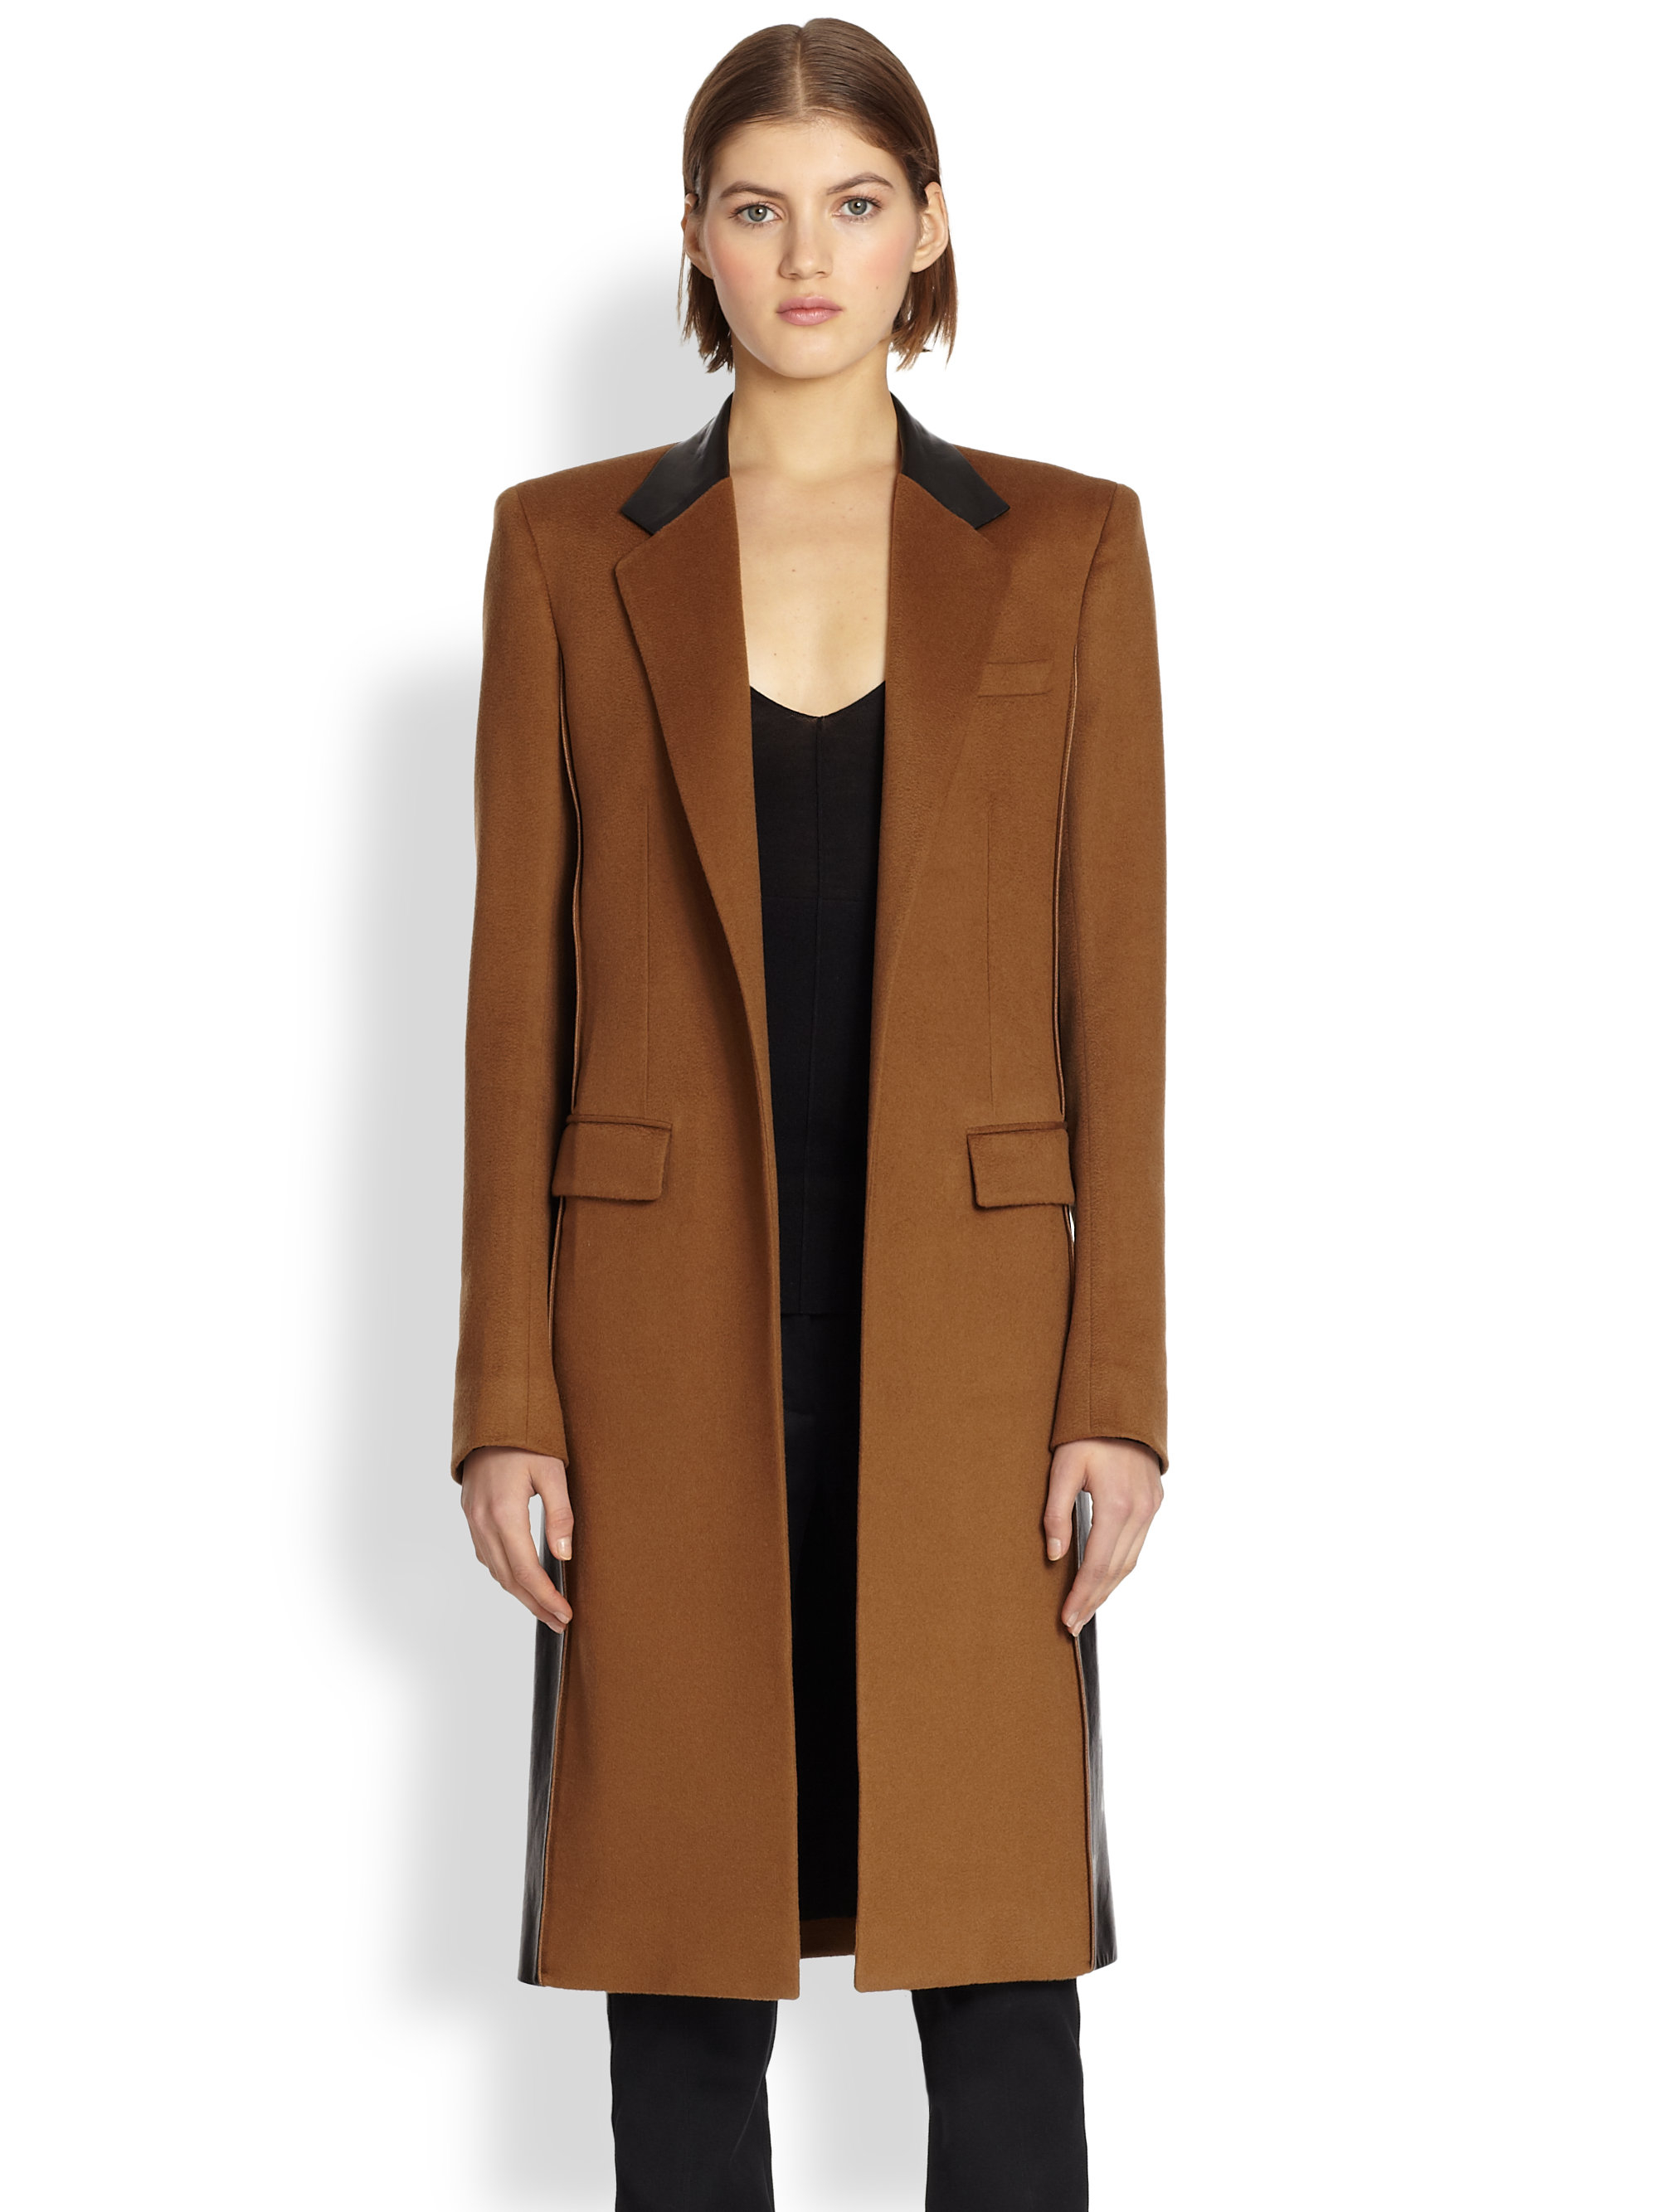 Reed krakoff Leather-Trimmed Cashmere & Wool Coat in Brown | Lyst